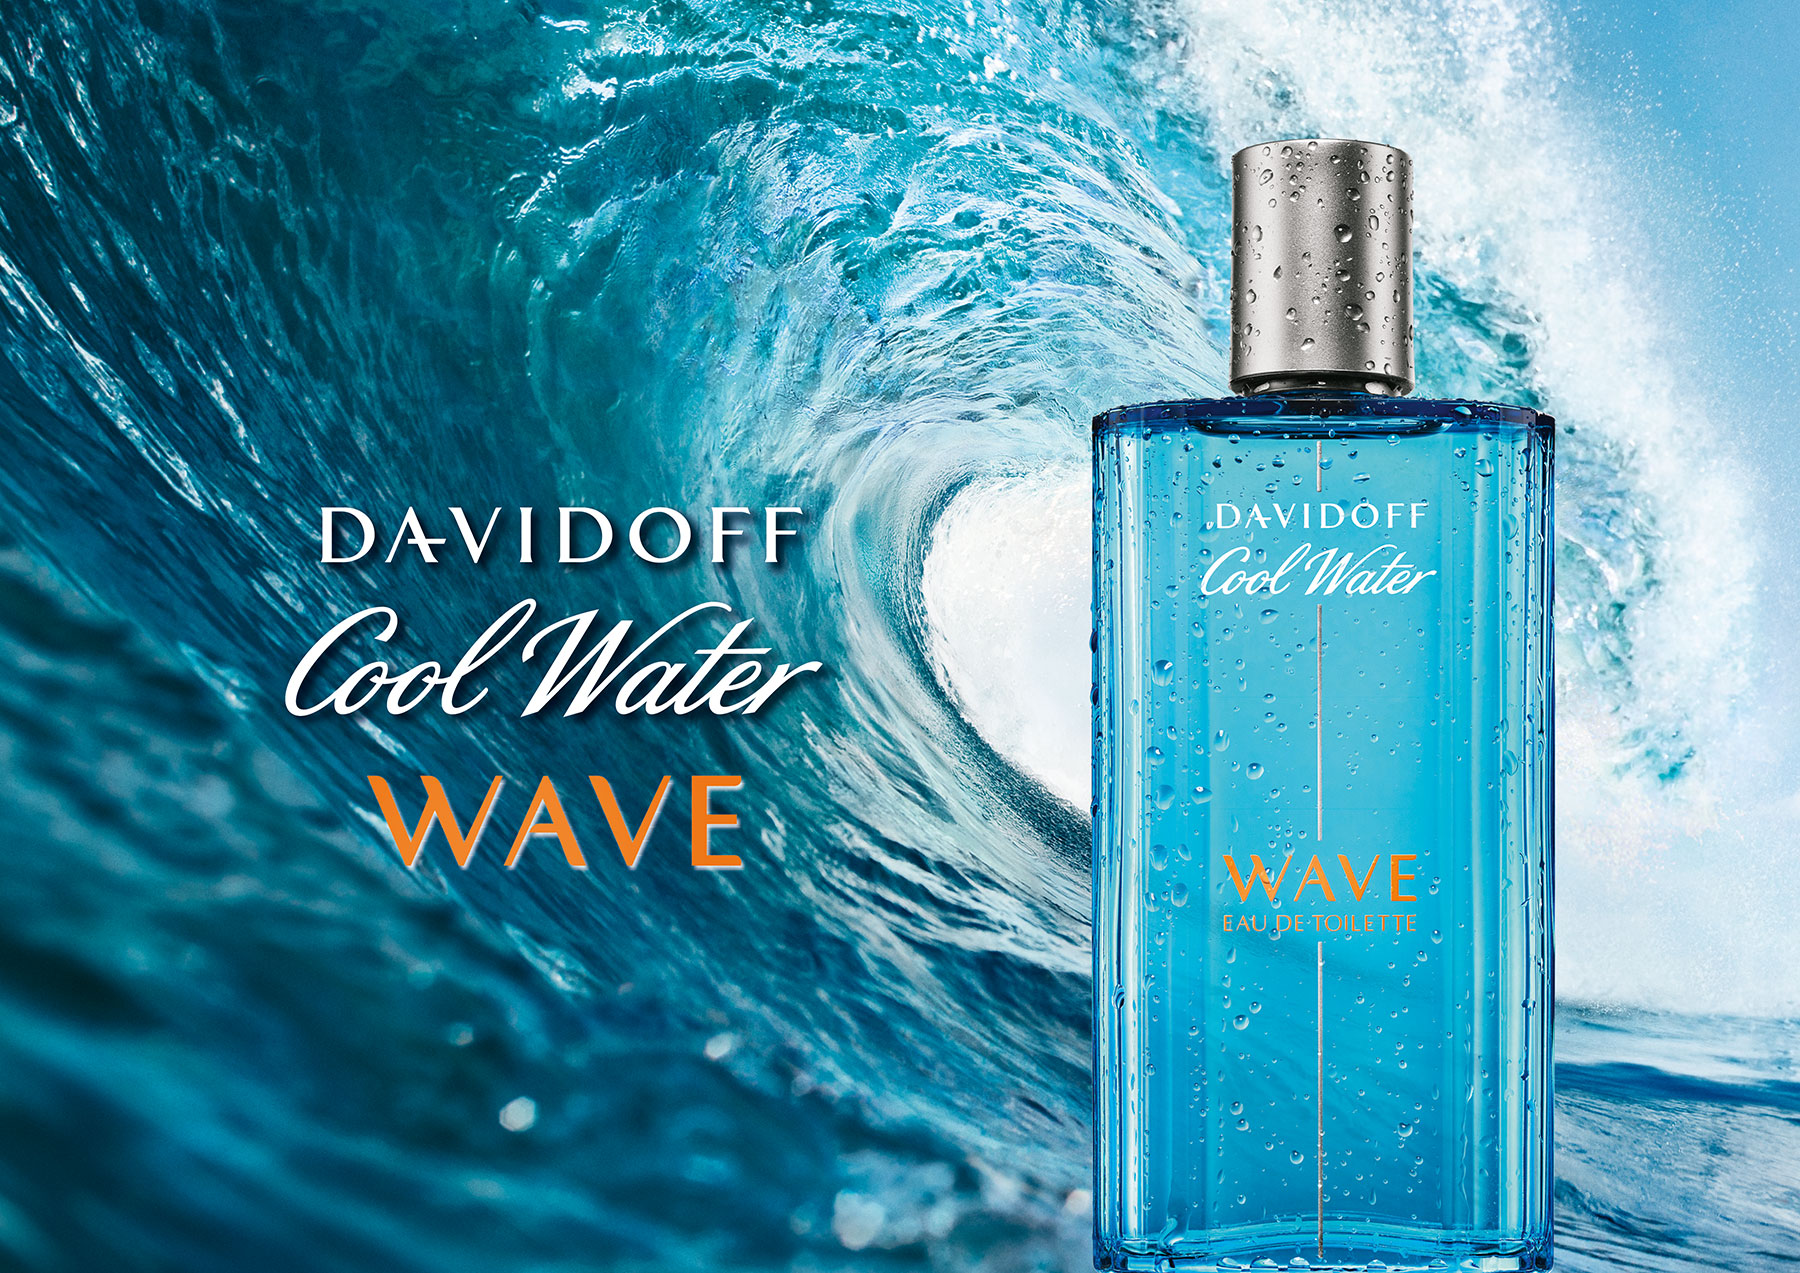 Cool Water Wave for men